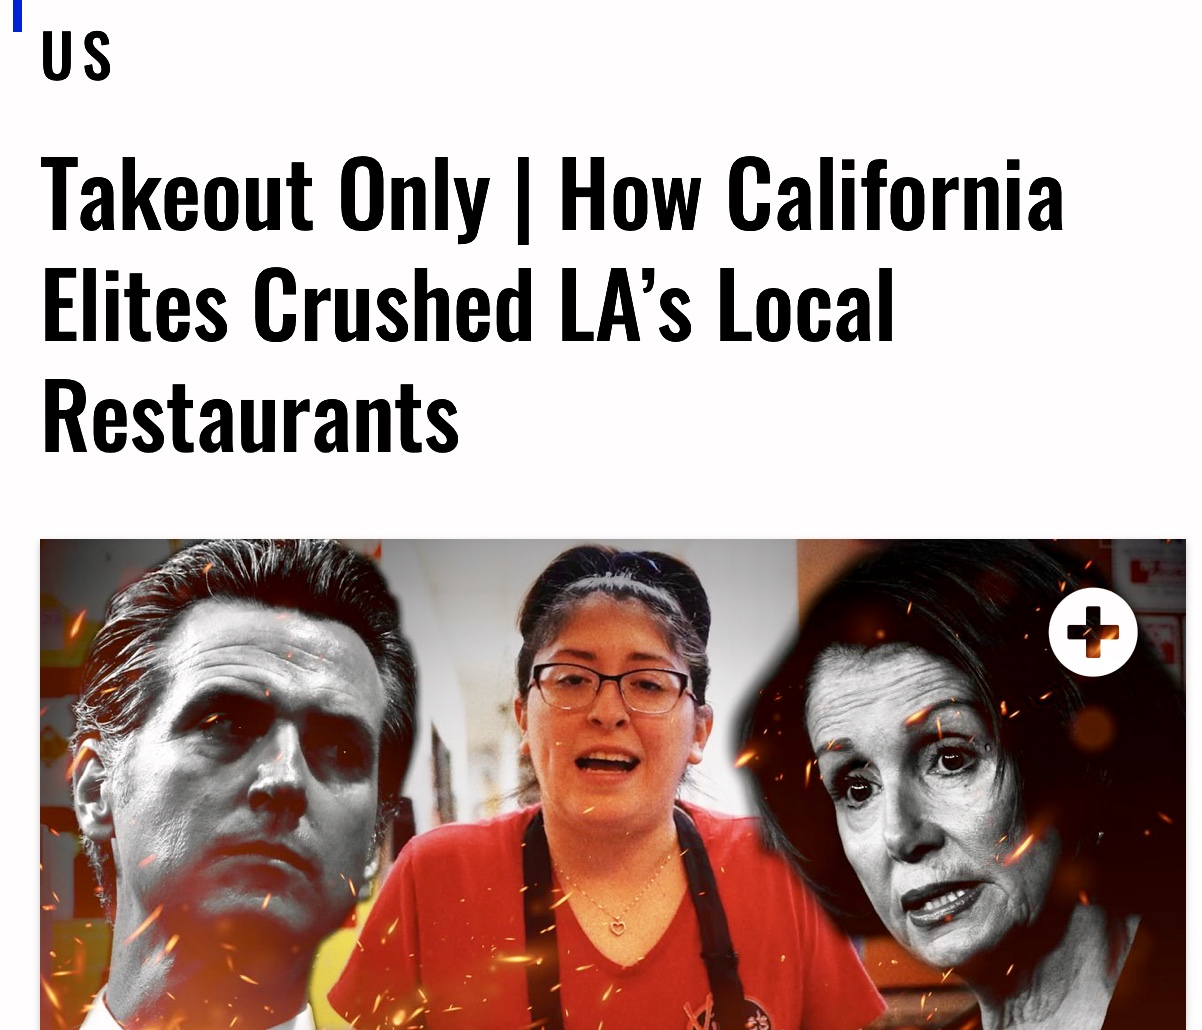 Takeout Only | How California Elites Crushed LA's Local Restaurants